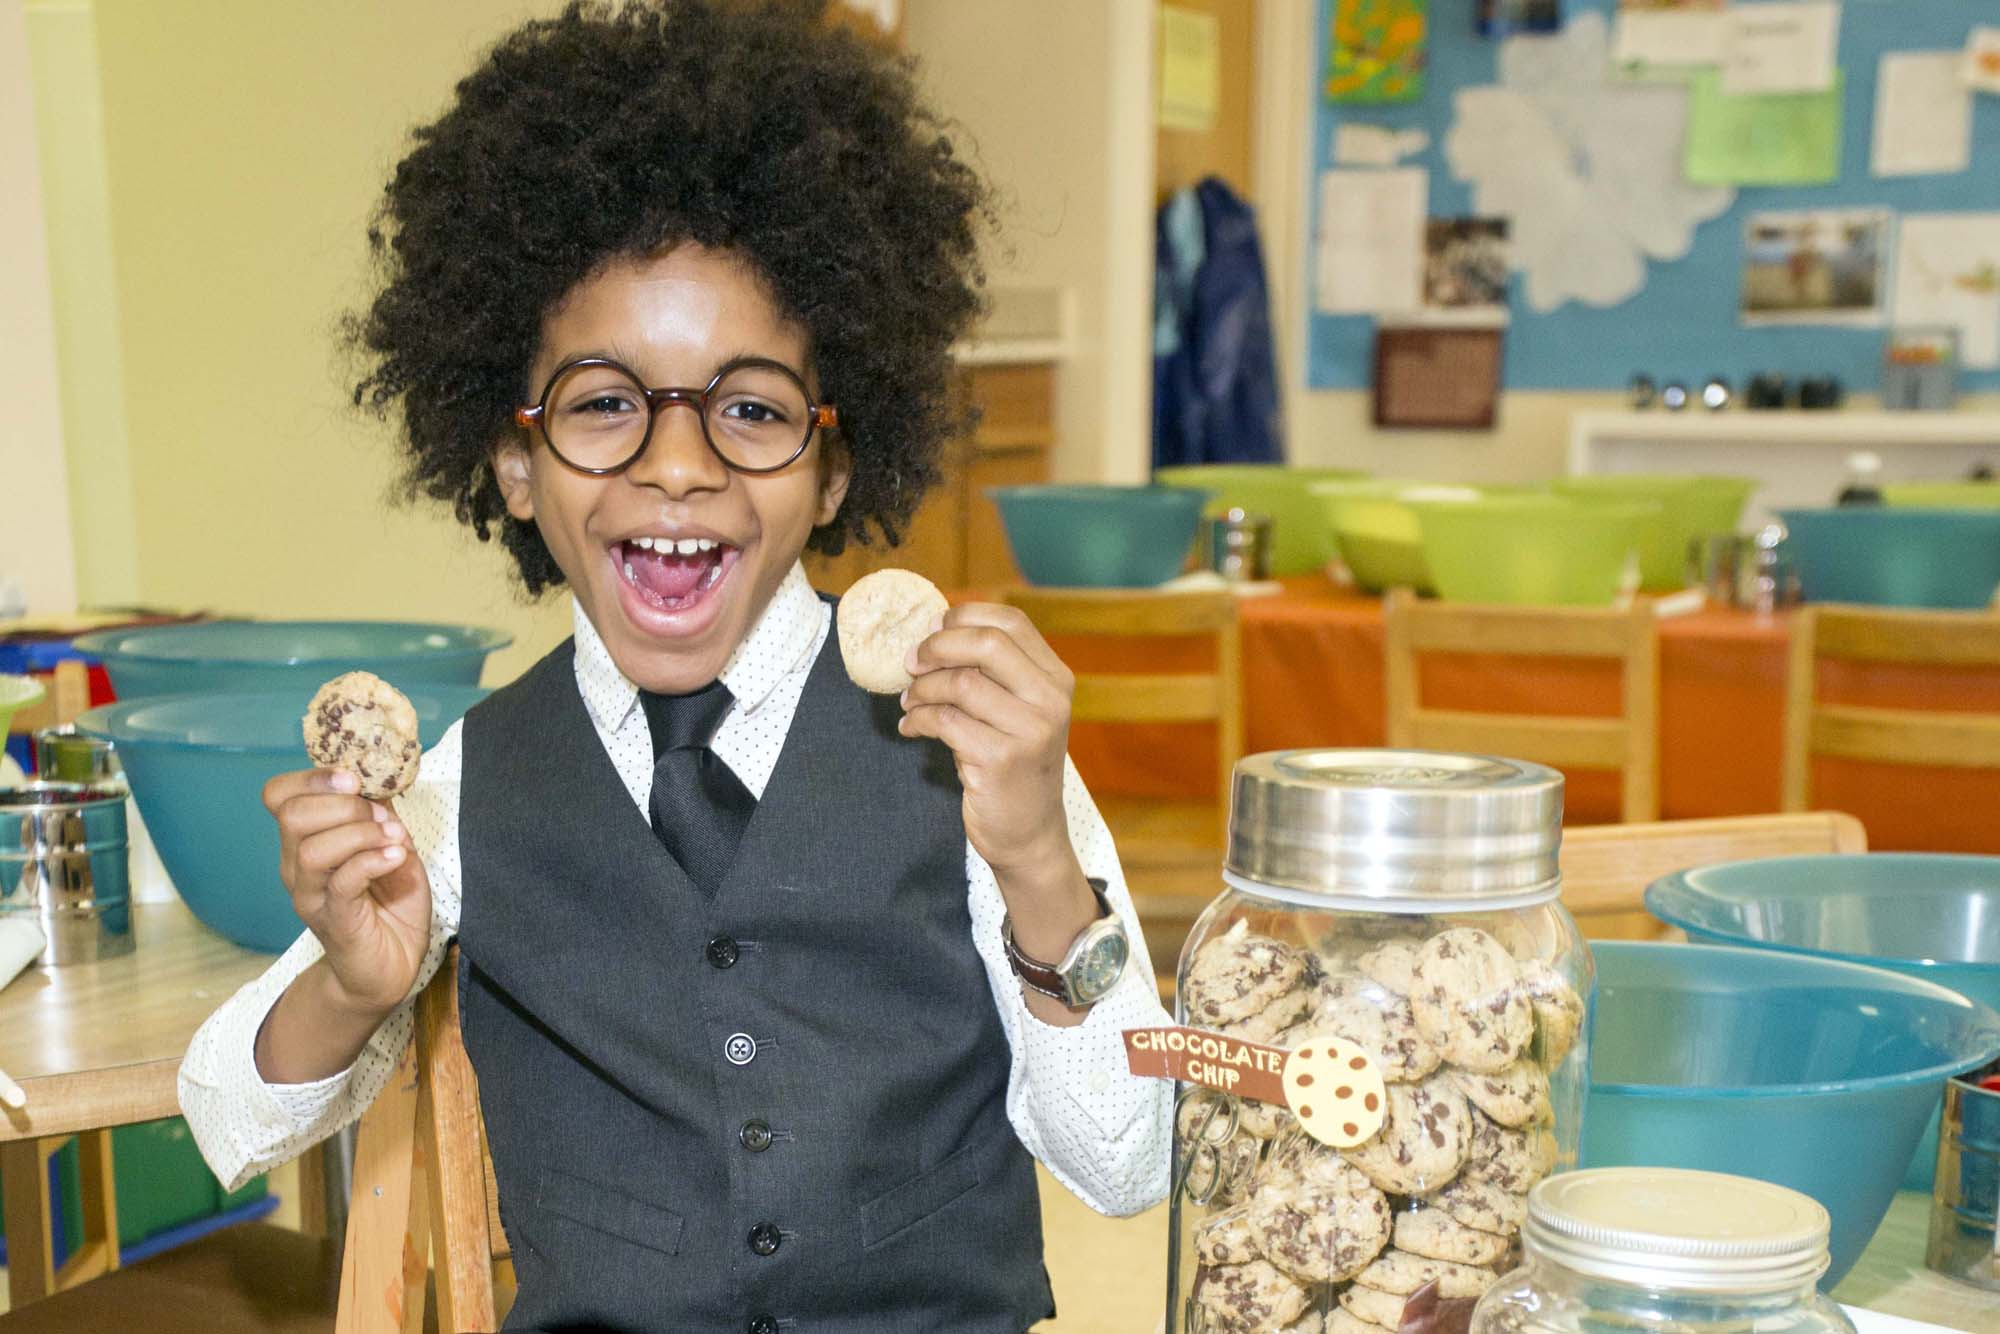 Mr. Cory, 11-Year-Old Cookie Tycoon